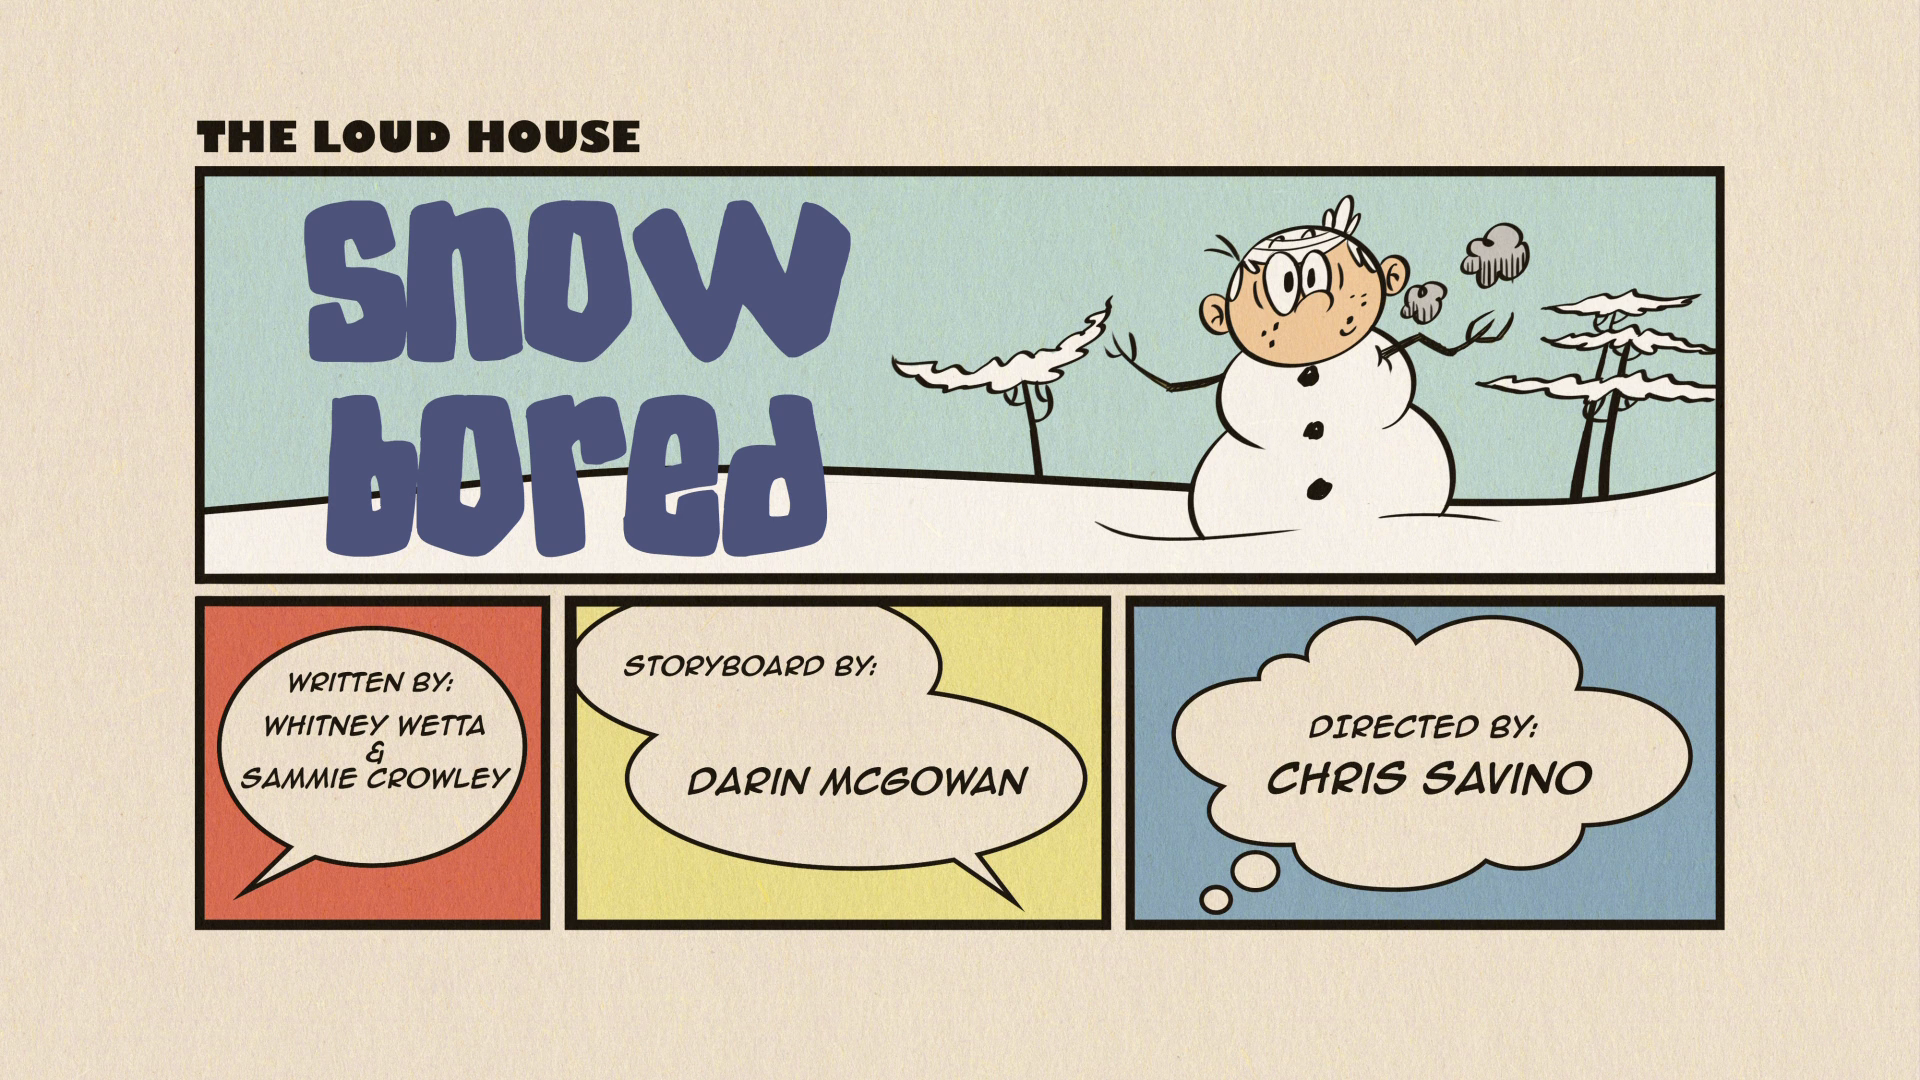 The loud house snow bored gallery | Laney In The Loud House Chapter